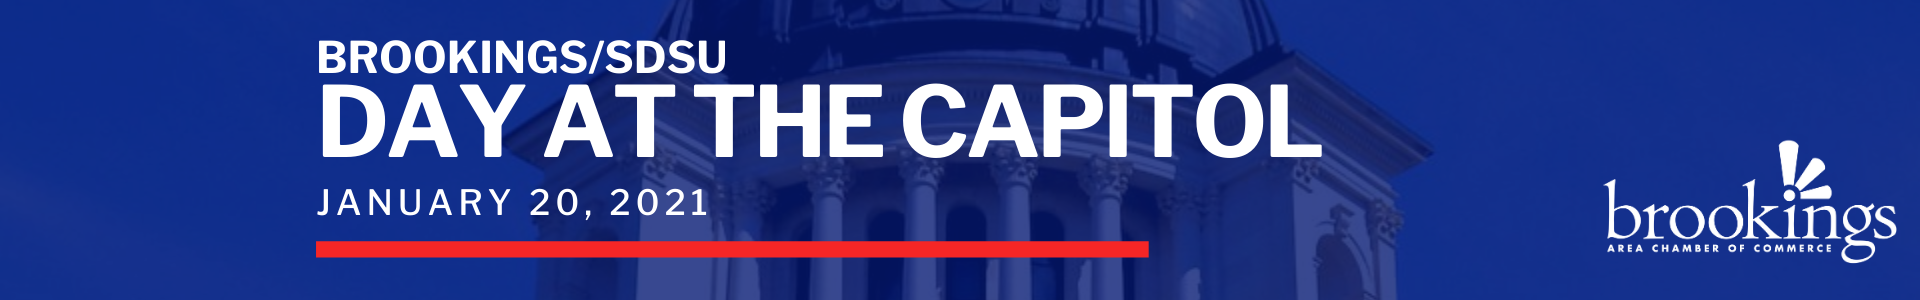 Copy-of-BROOKINGS_SDSU-DAY-AT-THE-CAPITOL-Event-Header-(1).png